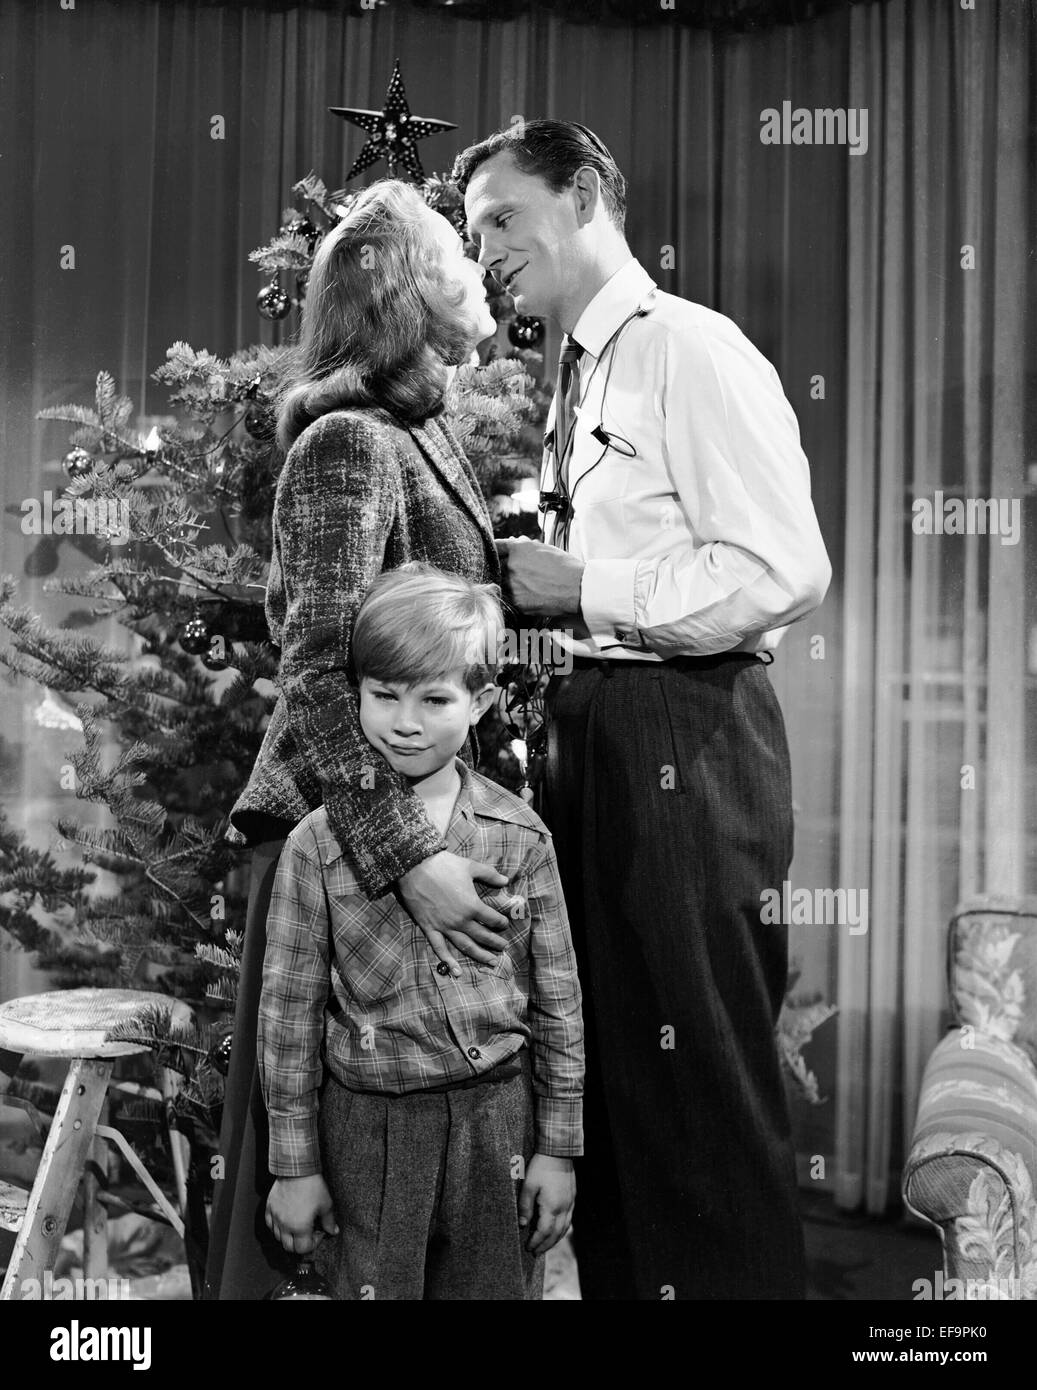 Janet leigh gordon gebert wendell corey holiday affair for Classic christmas films black and white